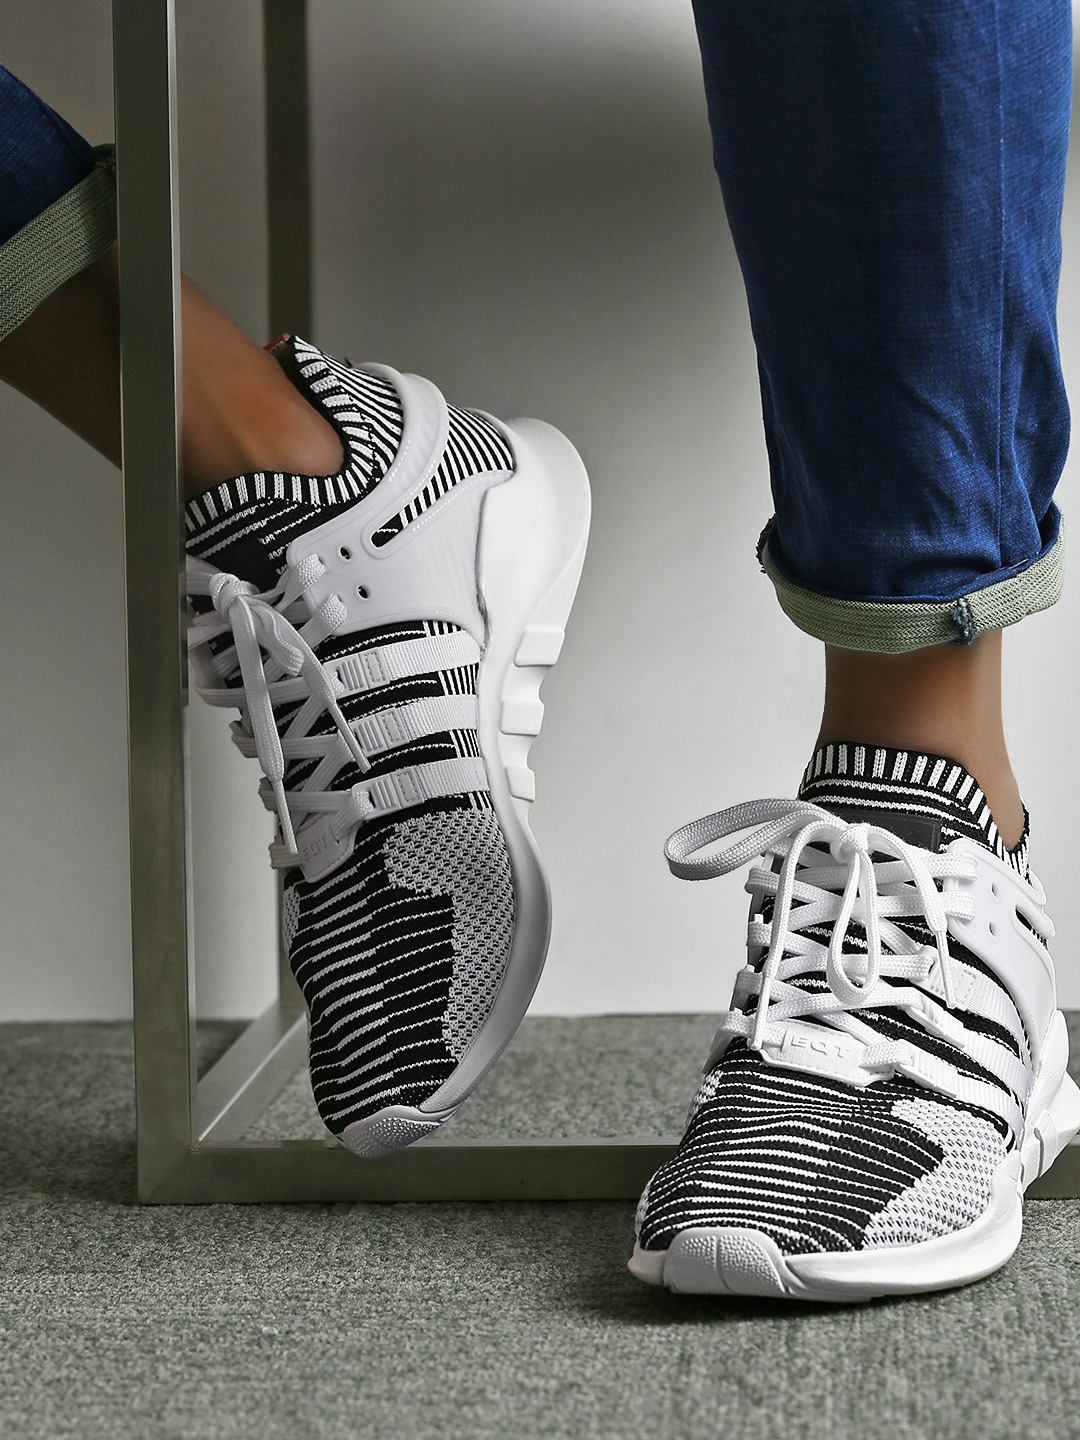 lowest price d6f50 02445 ADIDAS Originals Men White & Black EQT Support ADV Primeknit Woven Sneakers